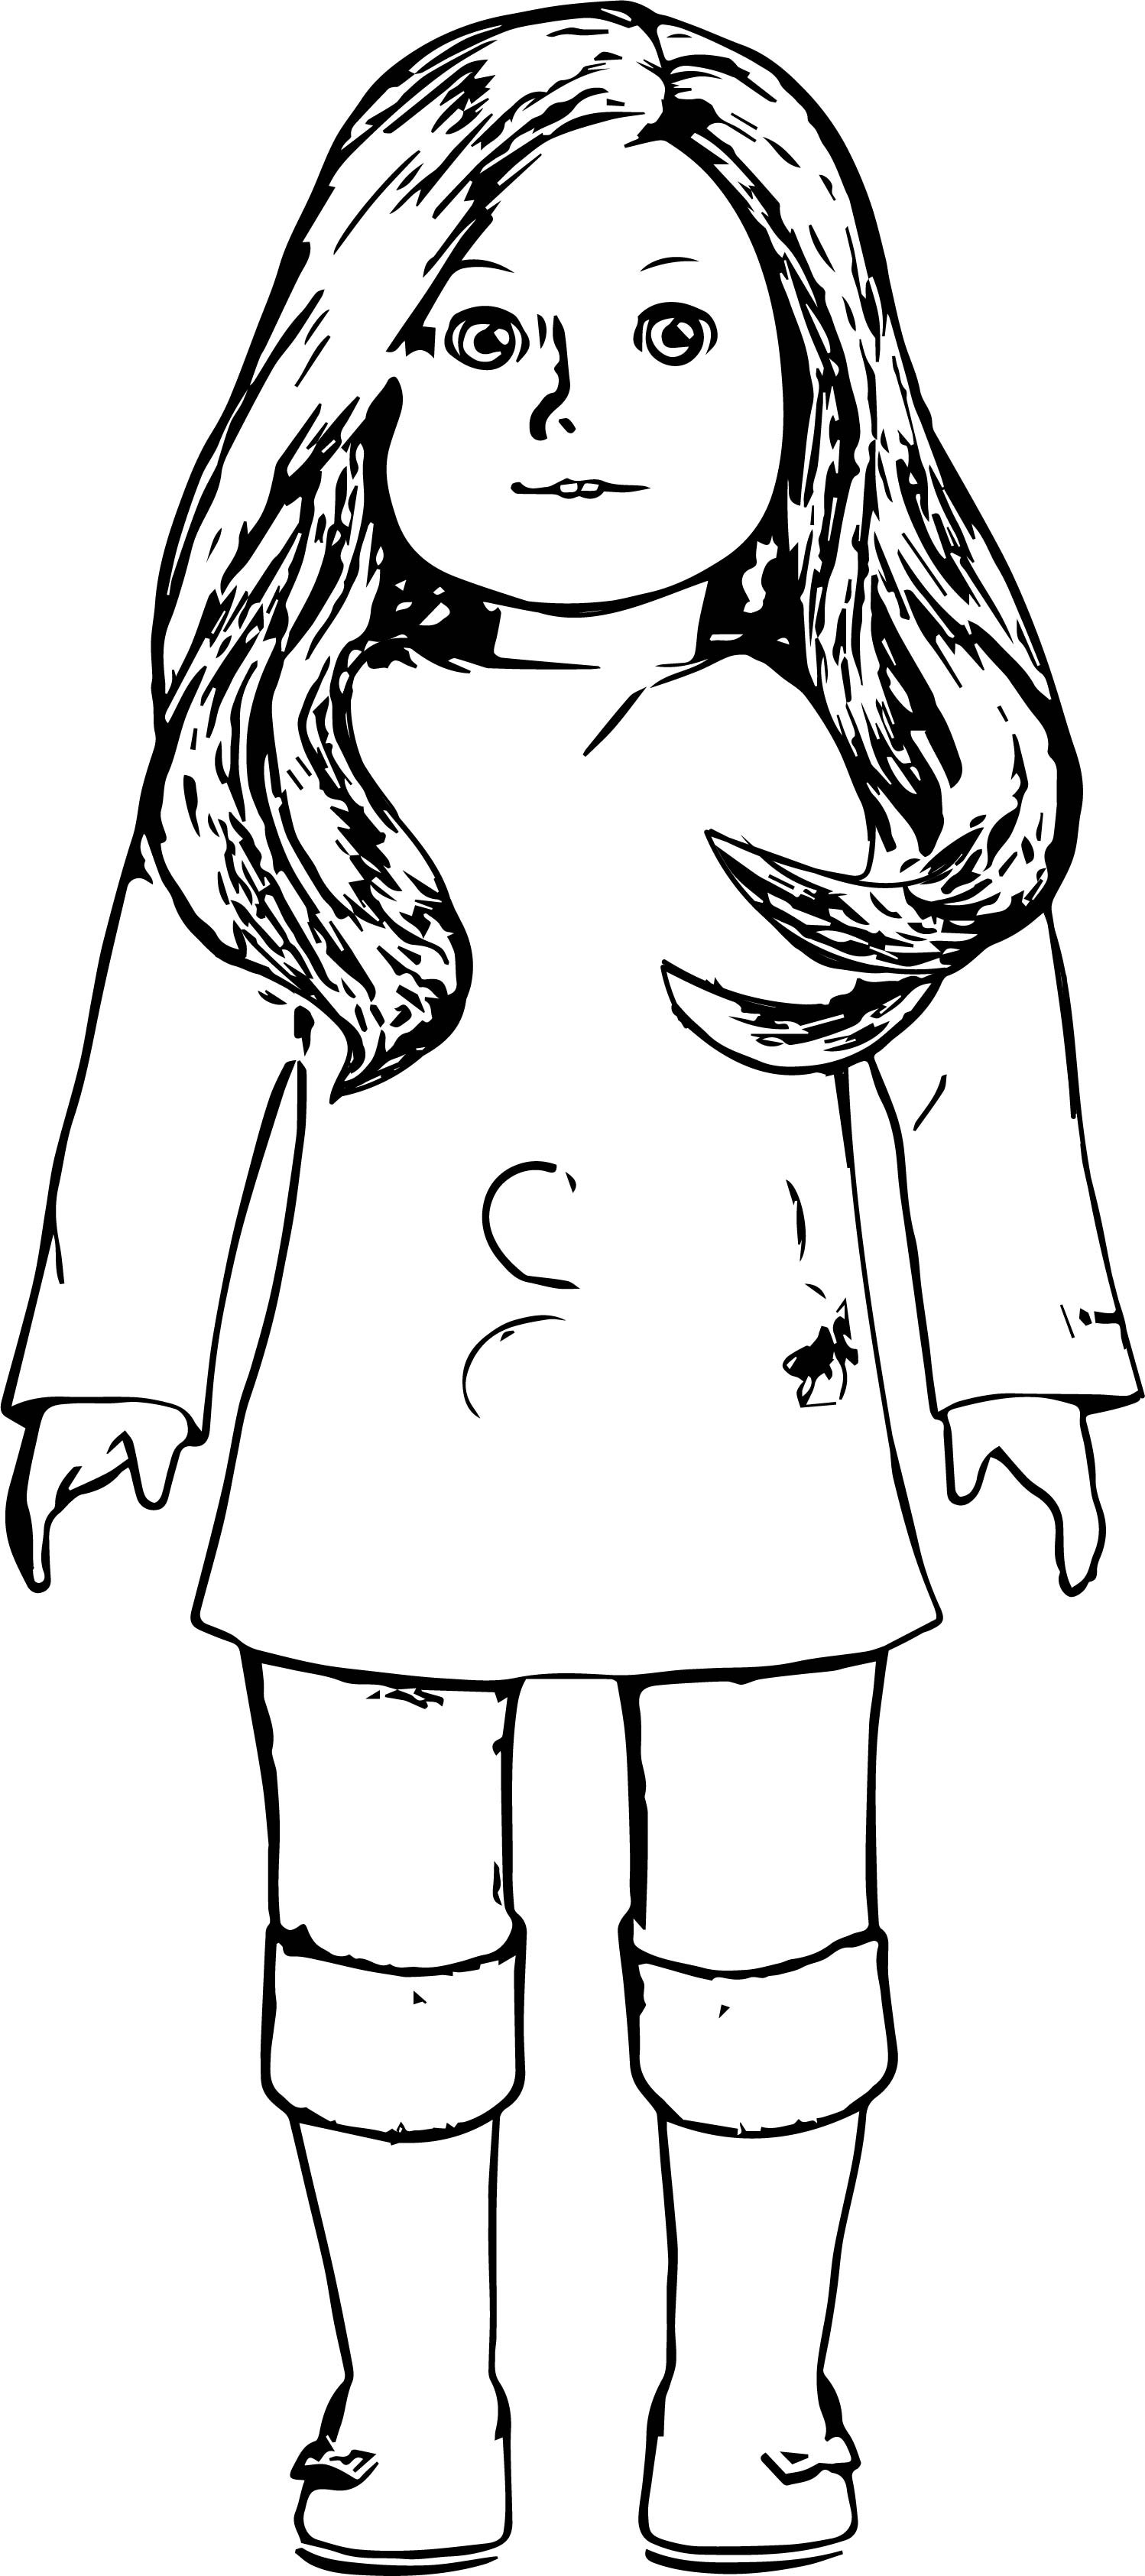 doll colouring pages dolls coloring pages colouring pages doll 1 1